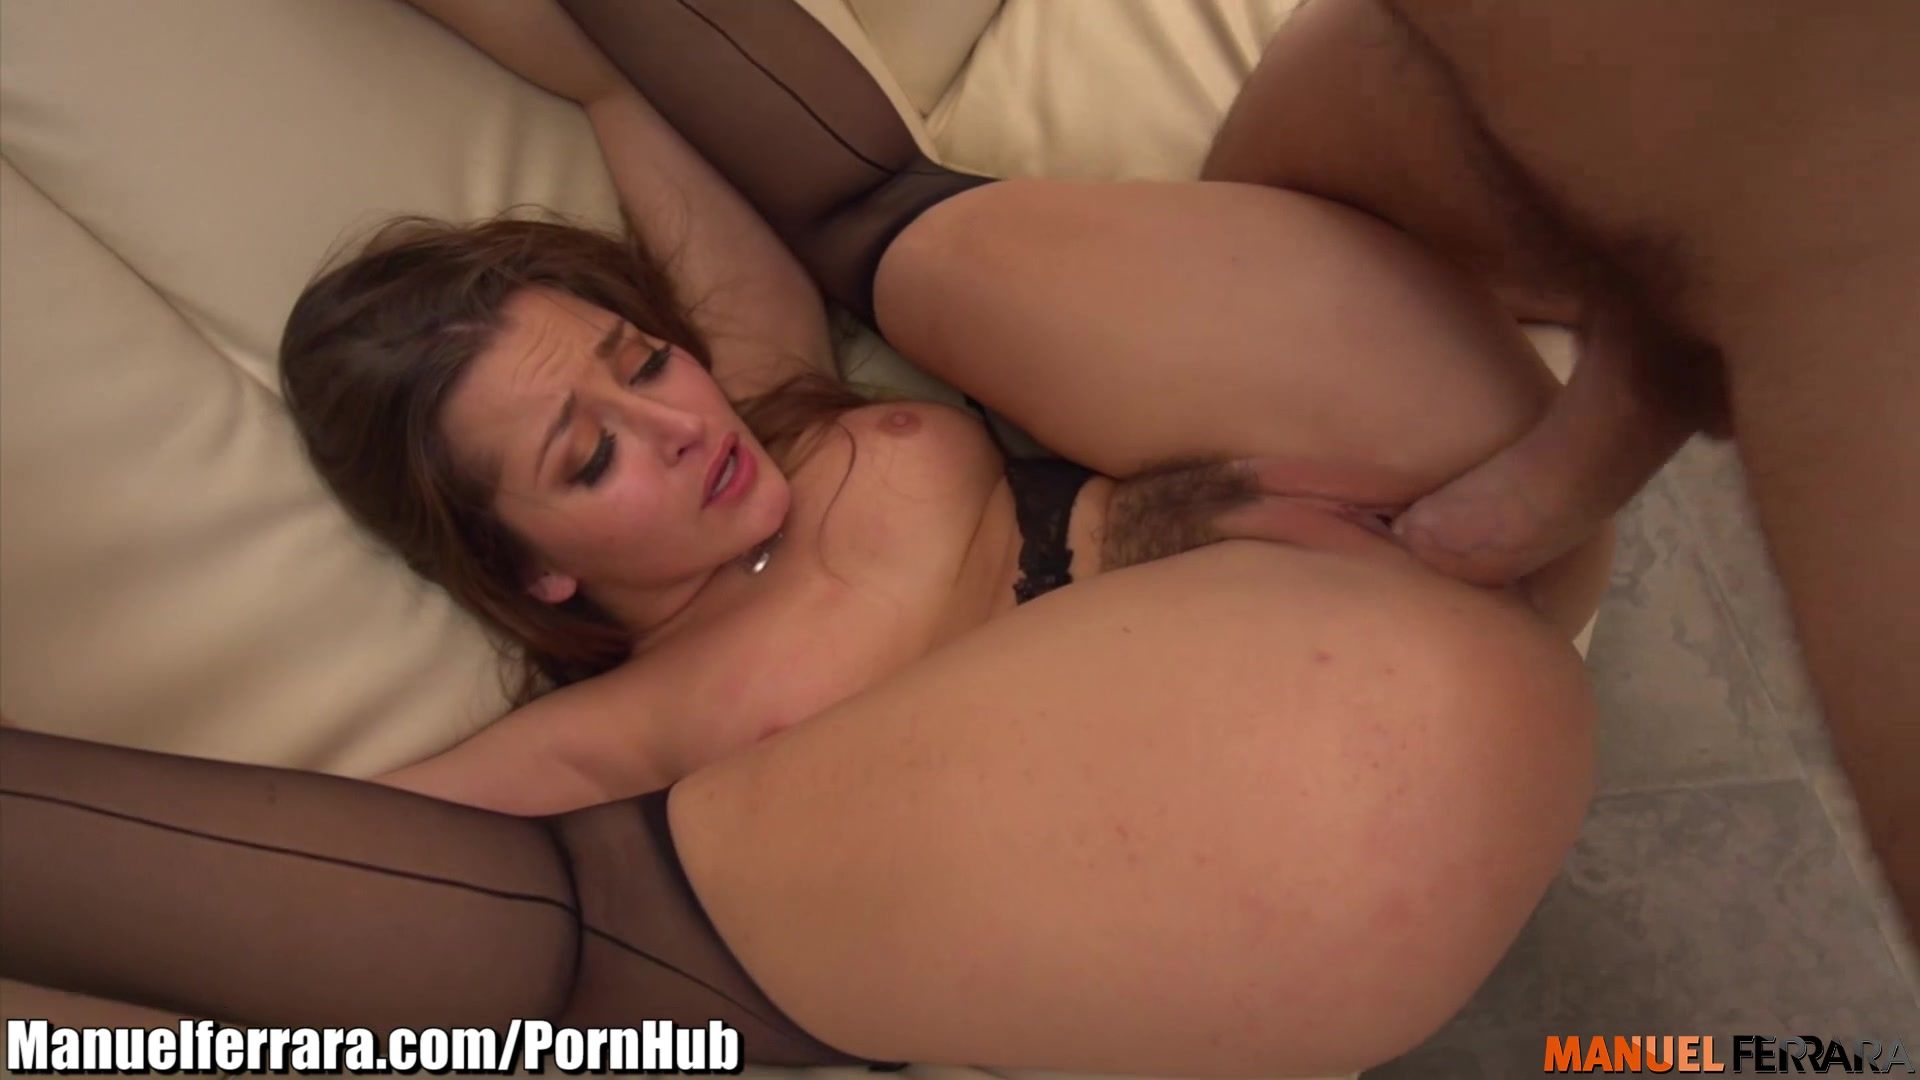 ManuelFerrara Loosing my English with Dani Daniels